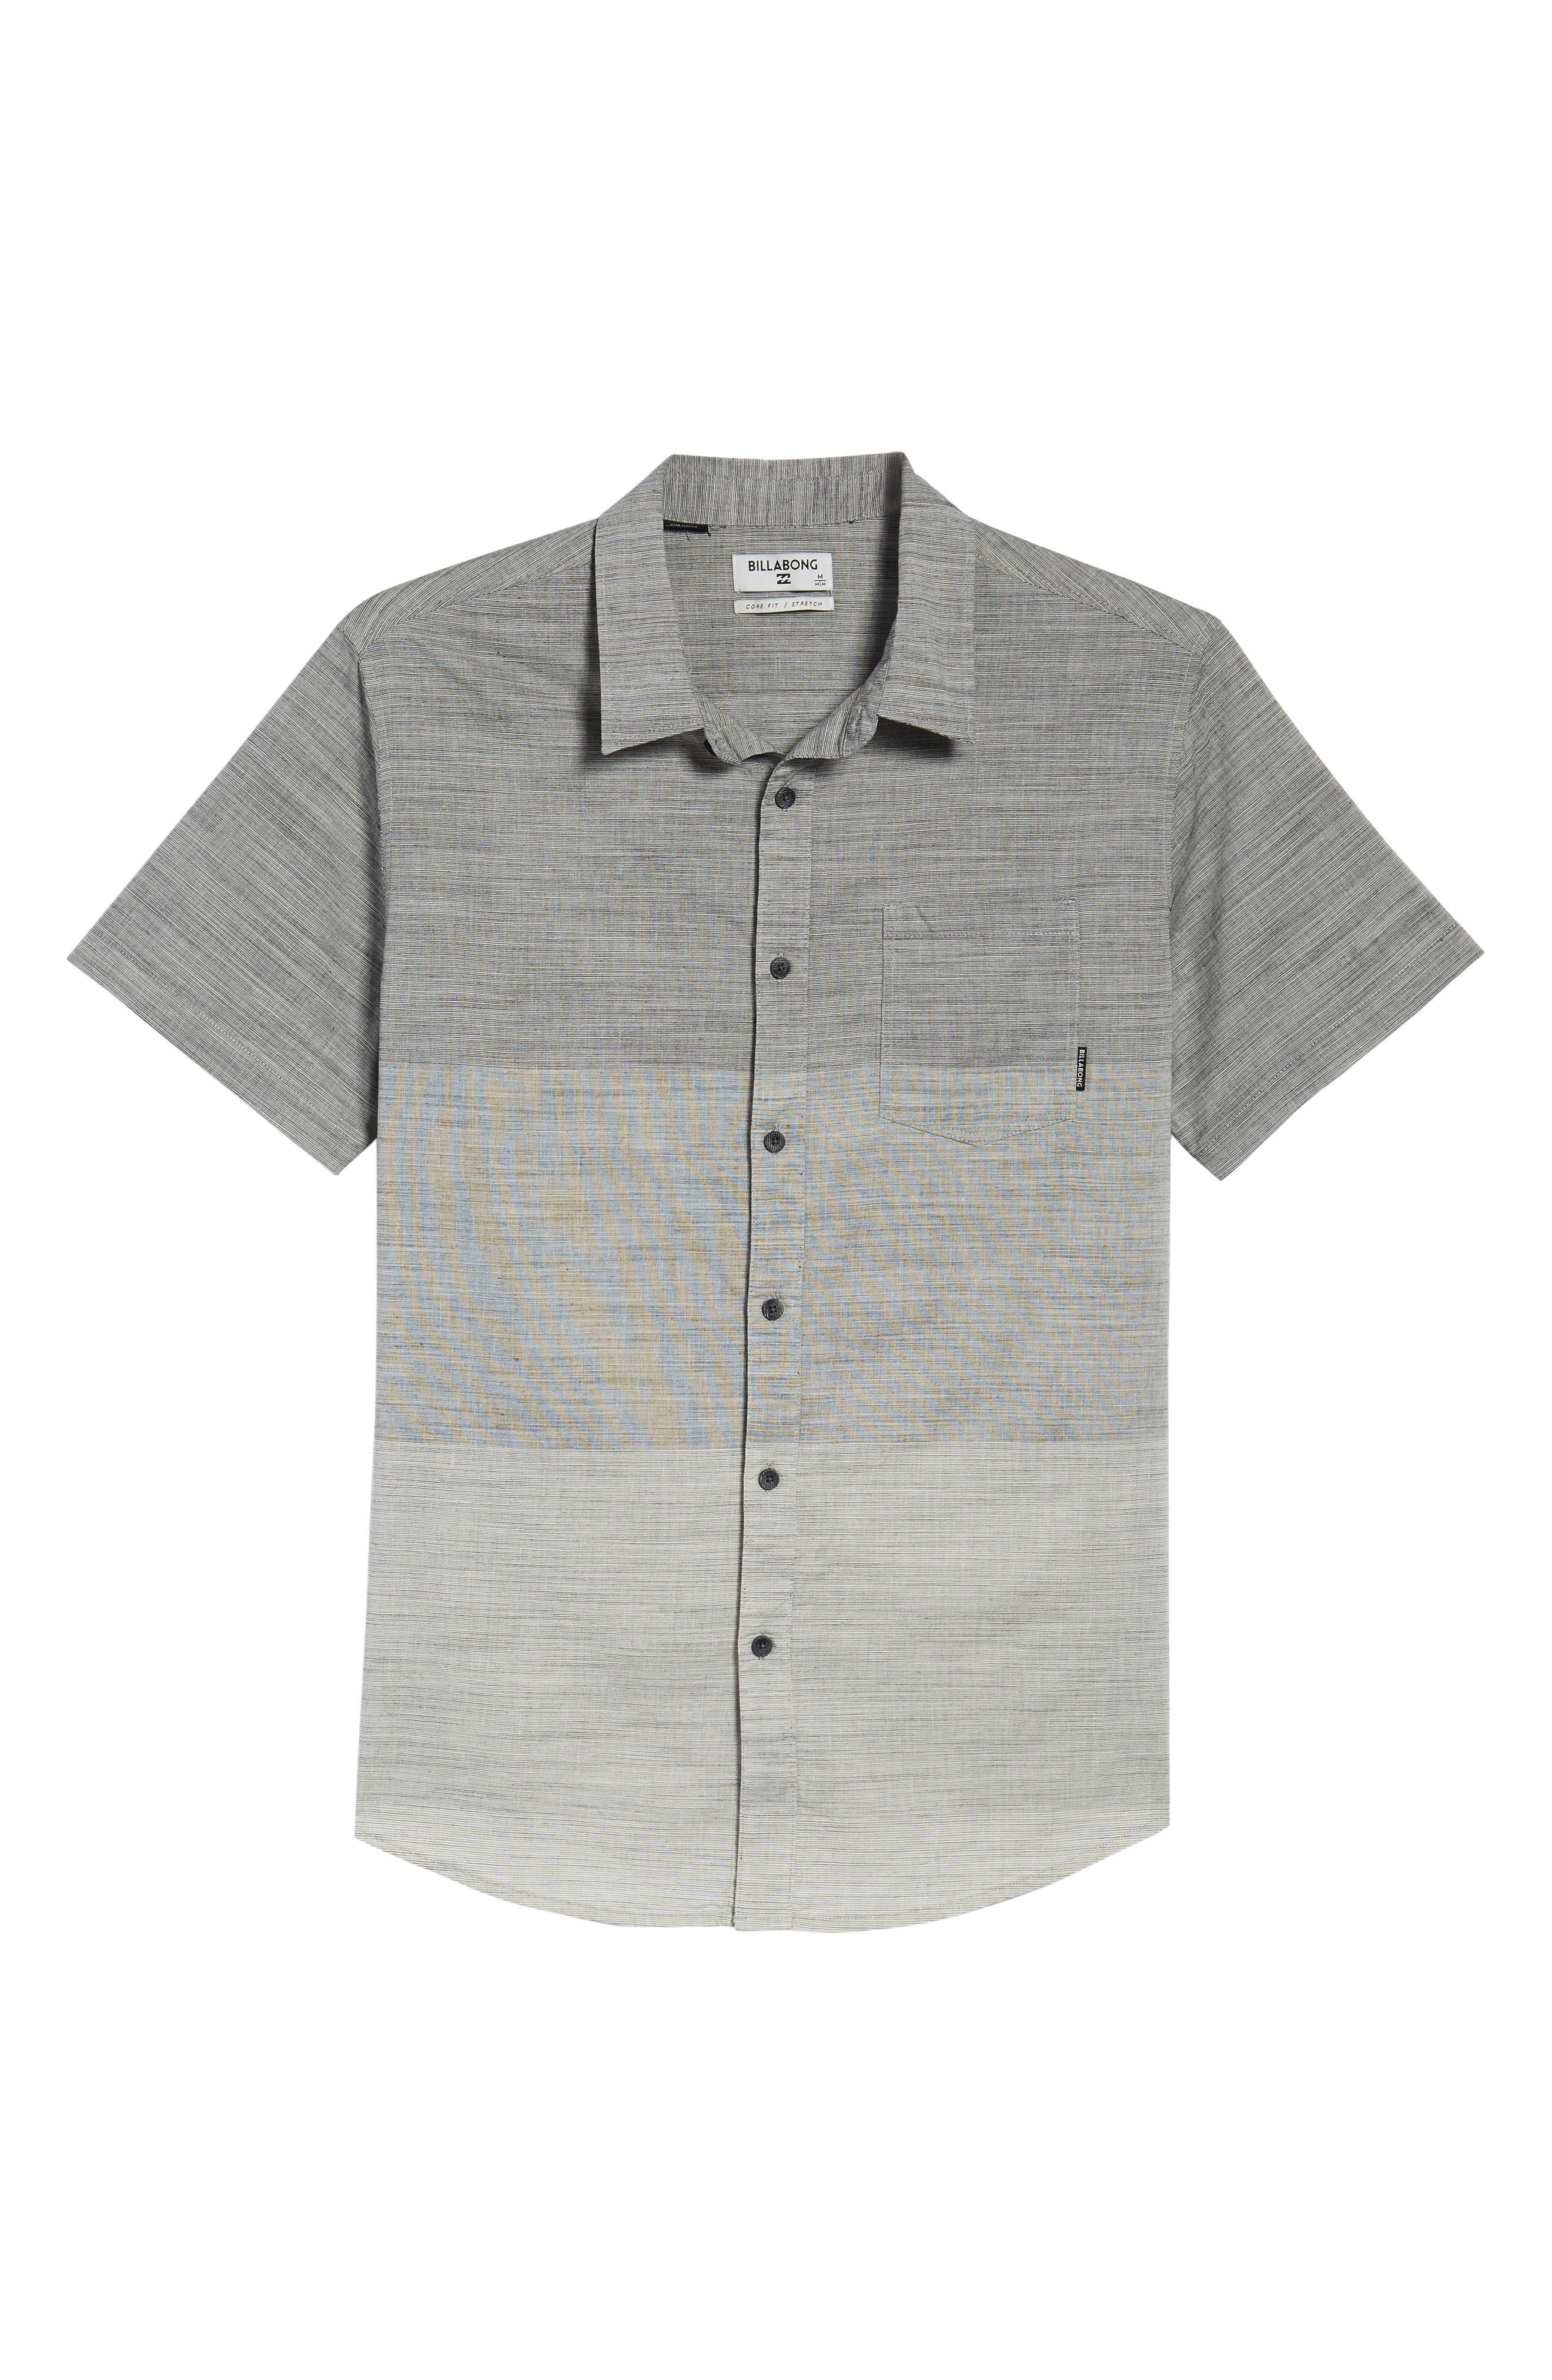 Faderade Short Sleeve Shirt,                             Alternate thumbnail 6, color,                             020